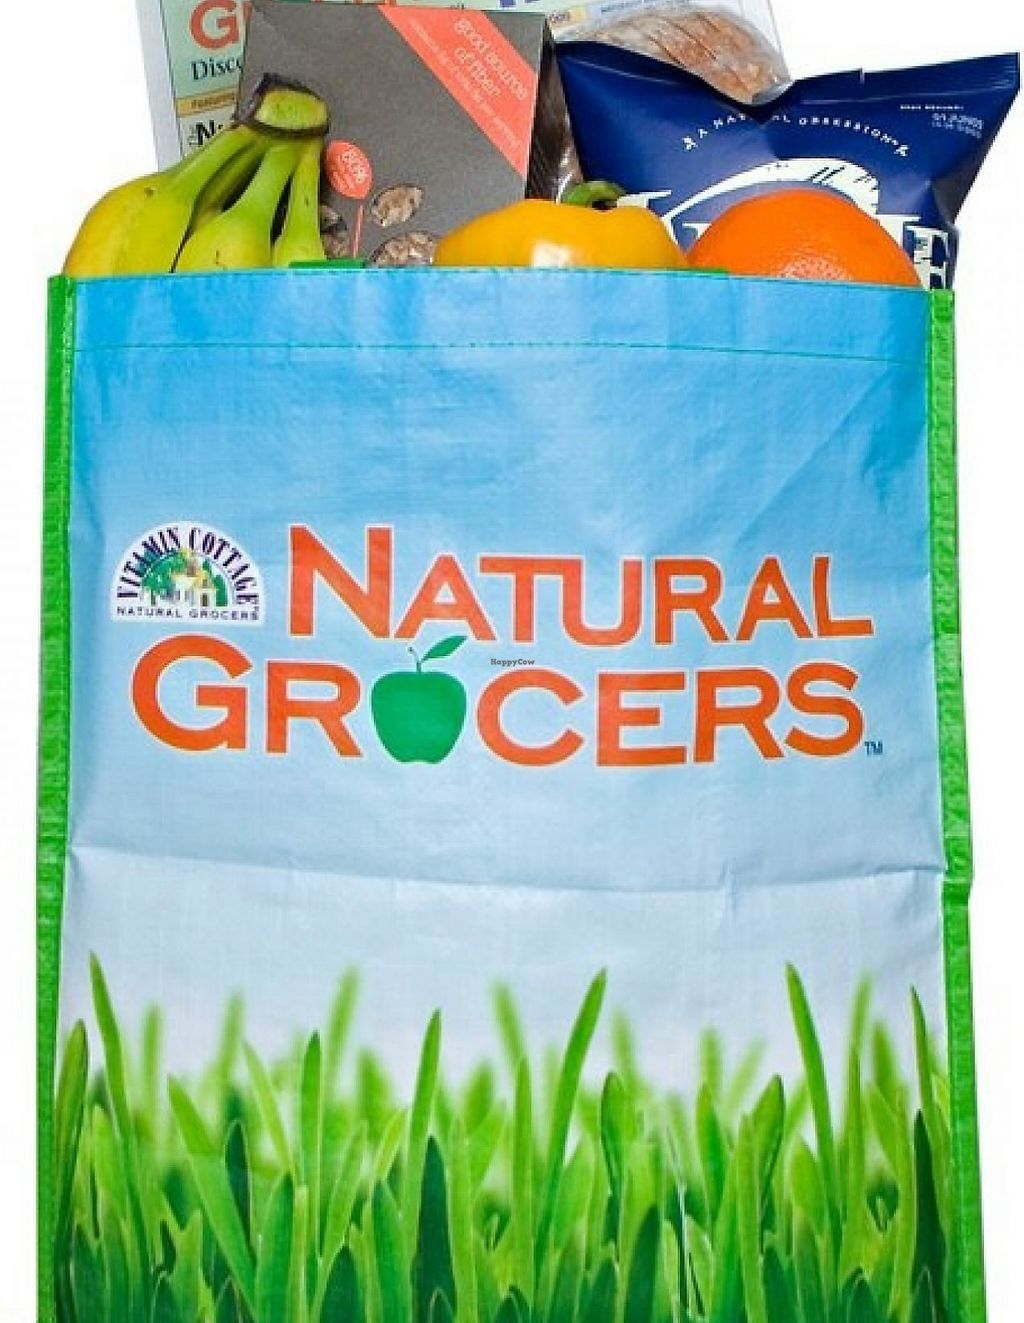 """Photo of Natural Grocers  by <a href=""""/members/profile/community"""">community</a> <br/>Natural Grocers <br/> April 4, 2015  - <a href='/contact/abuse/image/50855/220423'>Report</a>"""